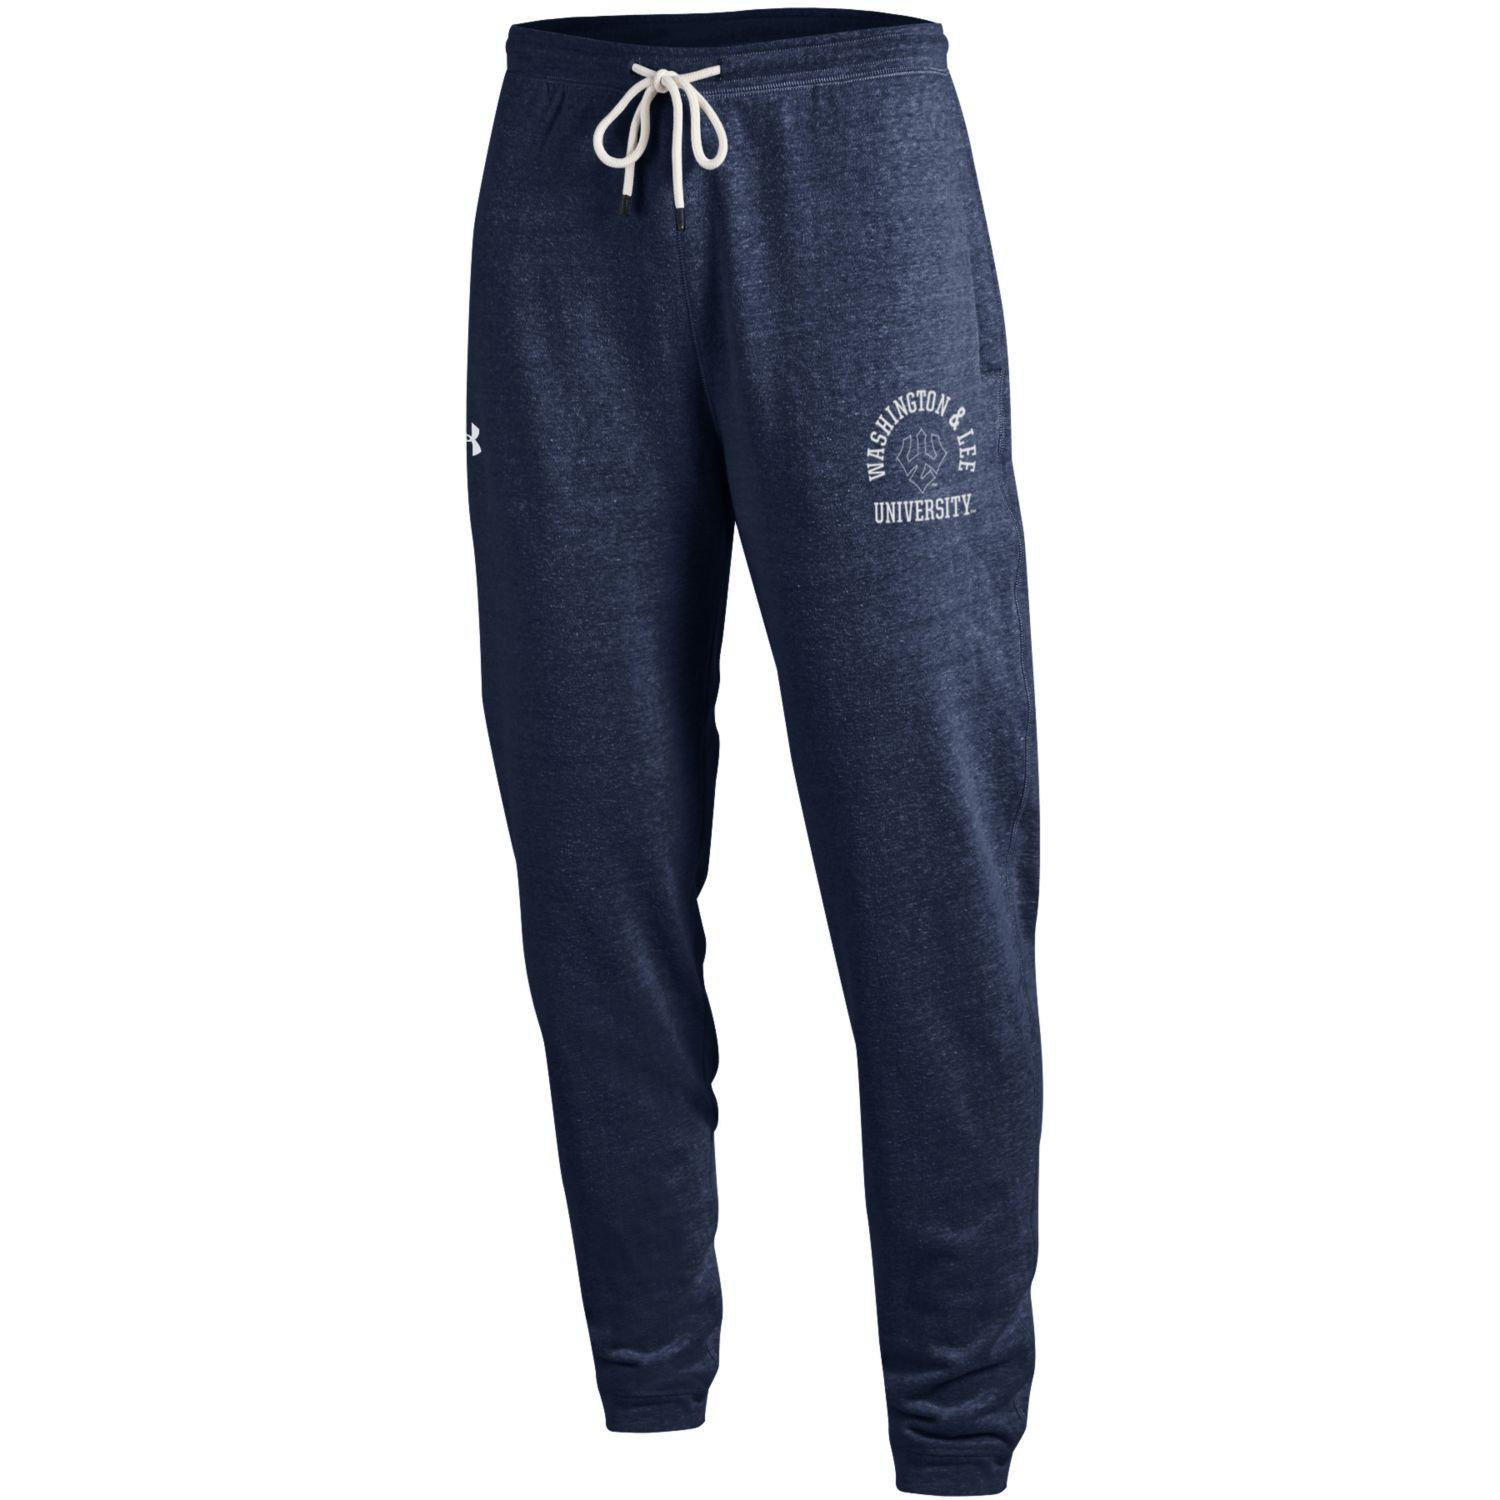 Under Armour Tri-Blend Sweatpants, Navy